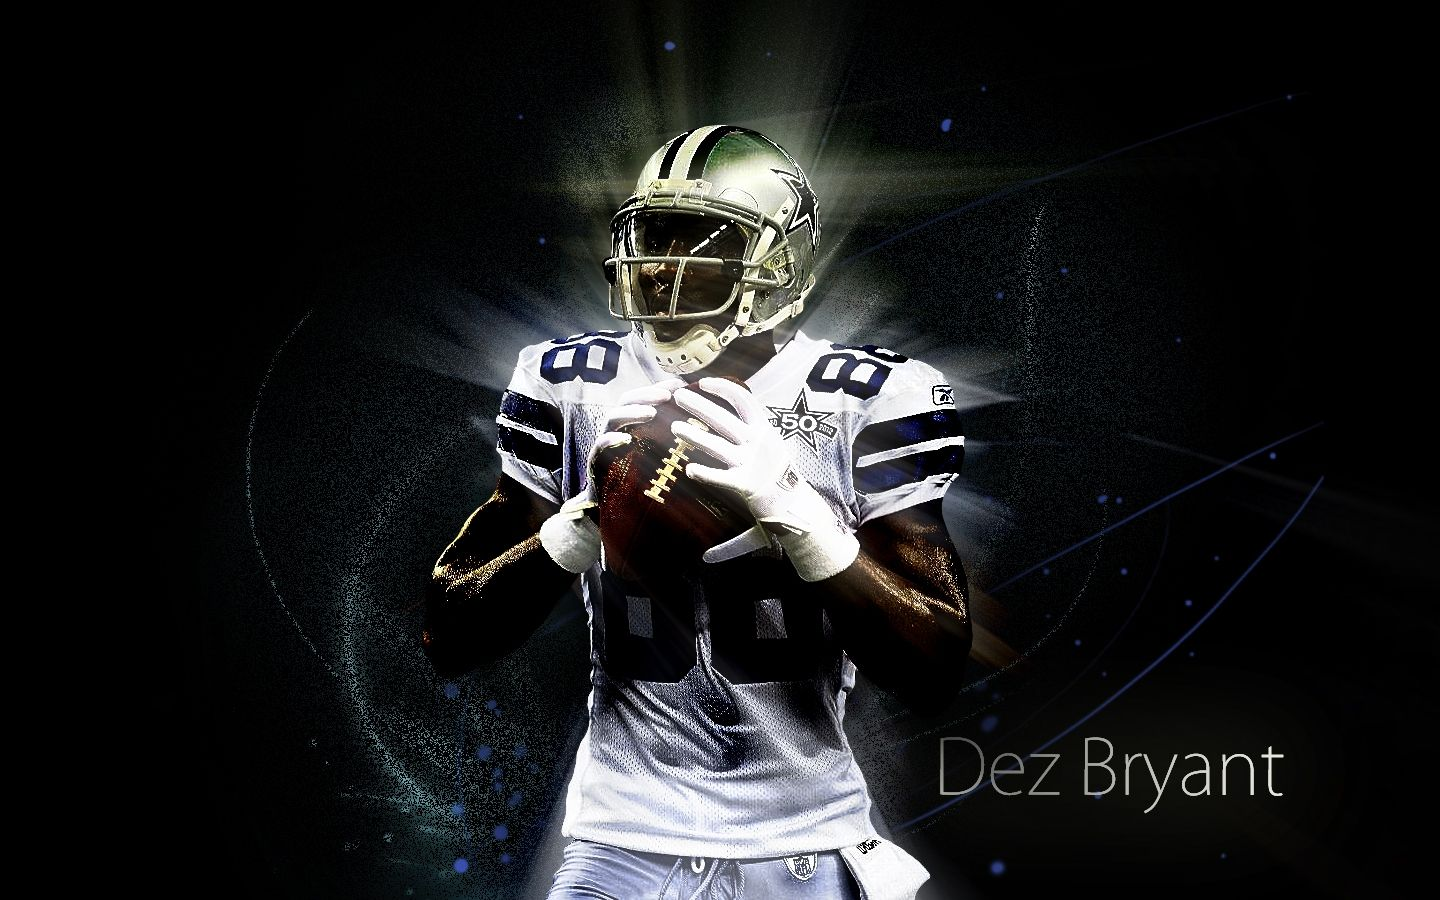 Dez Bryant Wallpapers Dez bryant, Dallas cowboys, Bryant